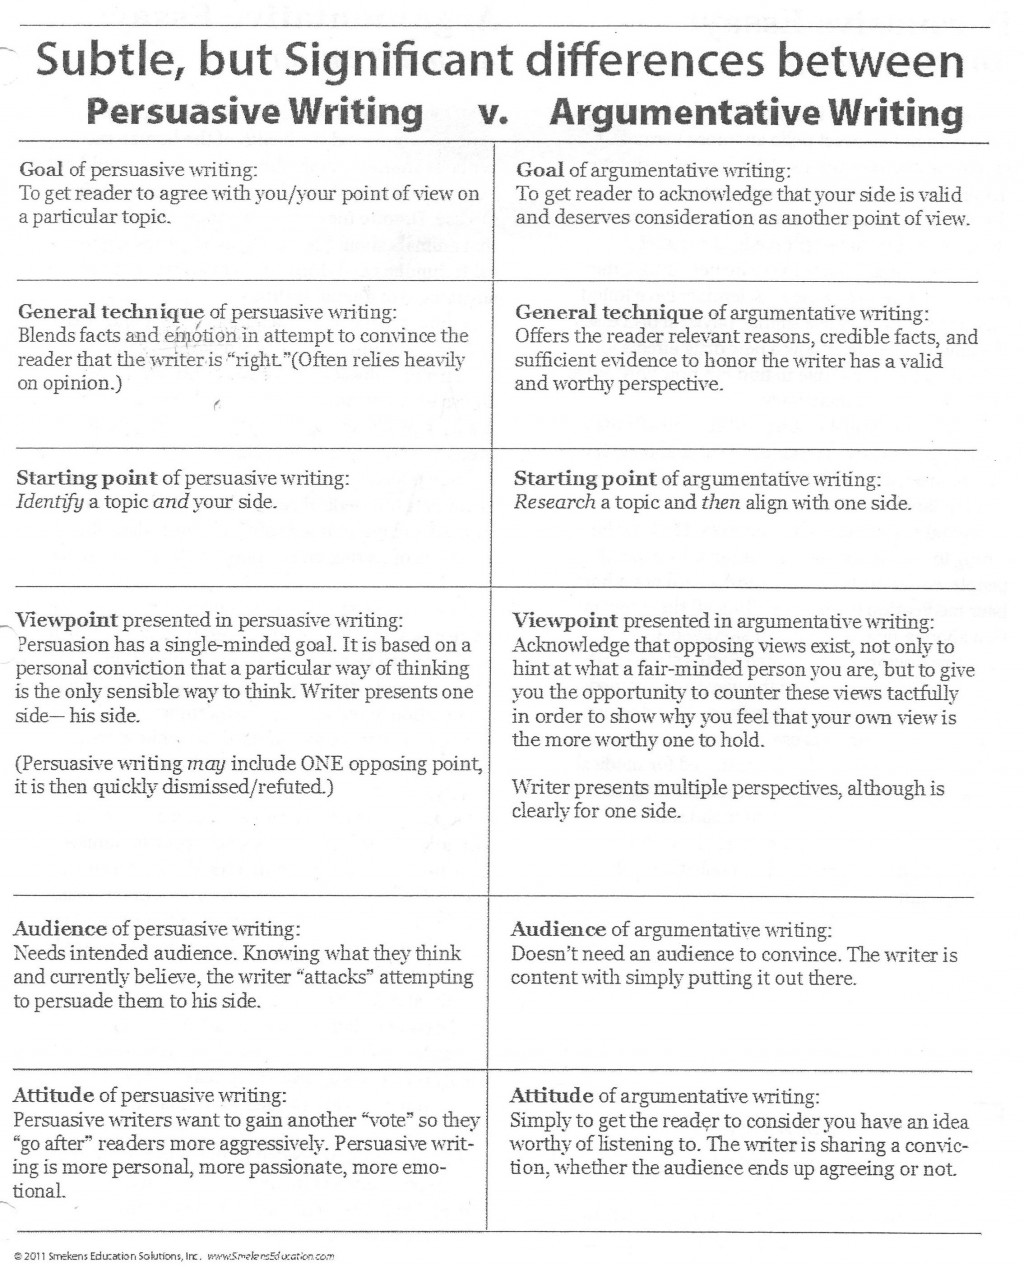 006 Essay Example Persuasive Vs Argumentative Awful Are And Essays The Same Differentiate Large